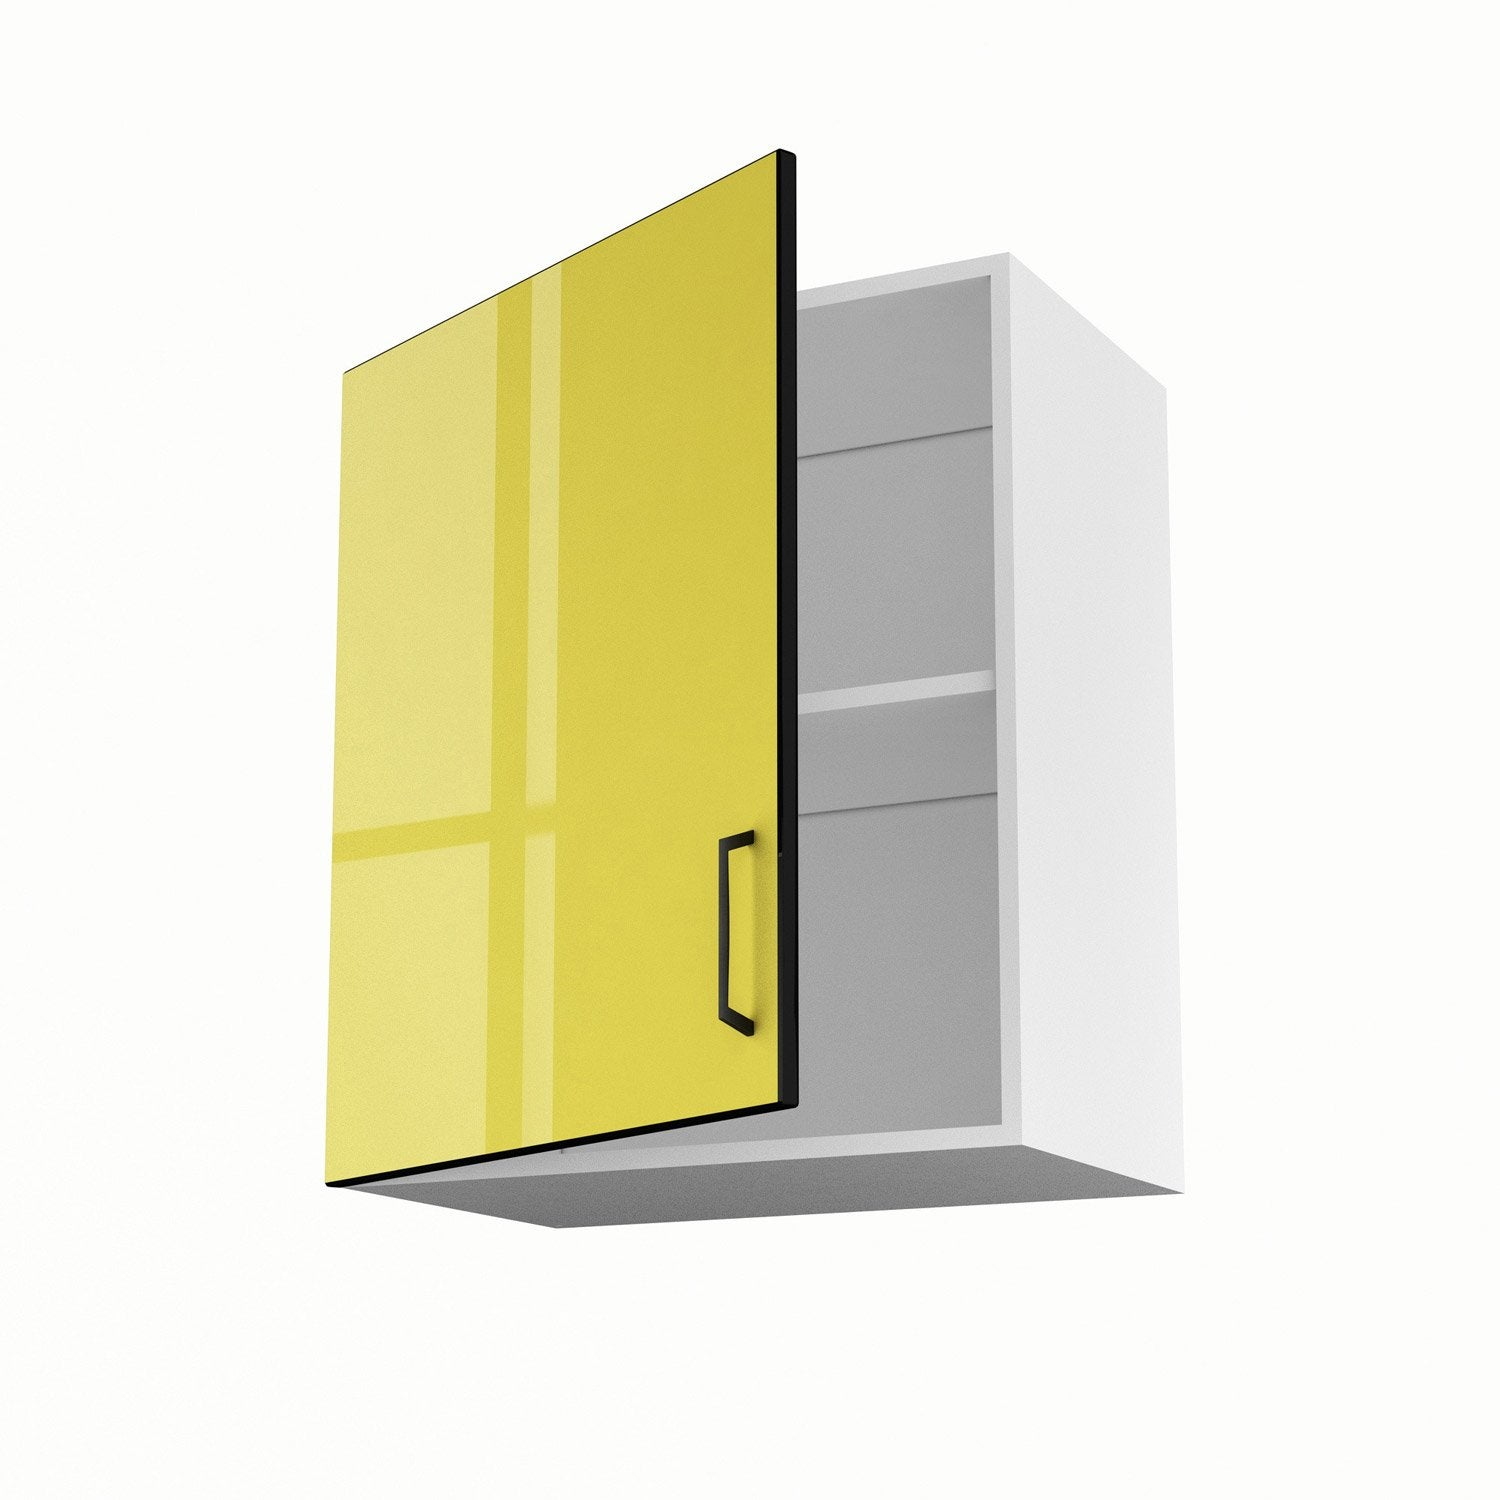 Meuble de cuisine haut jaune 1 porte pop h70xl60xp35 cm for Porte 60 x 50